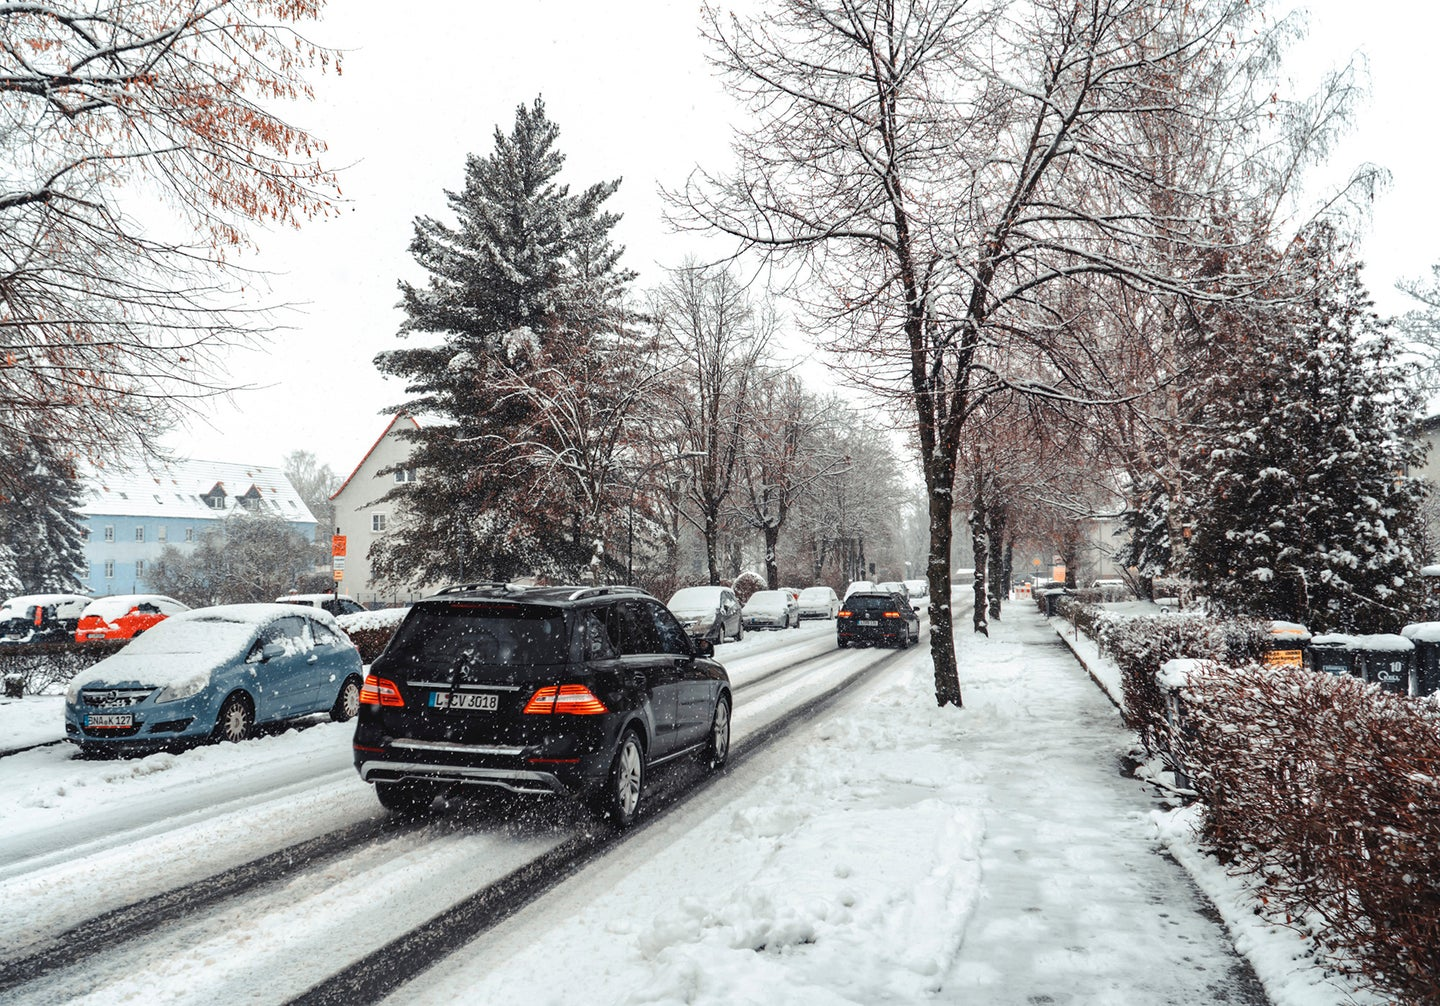 snowy street with tress, parked cars, and cars driving